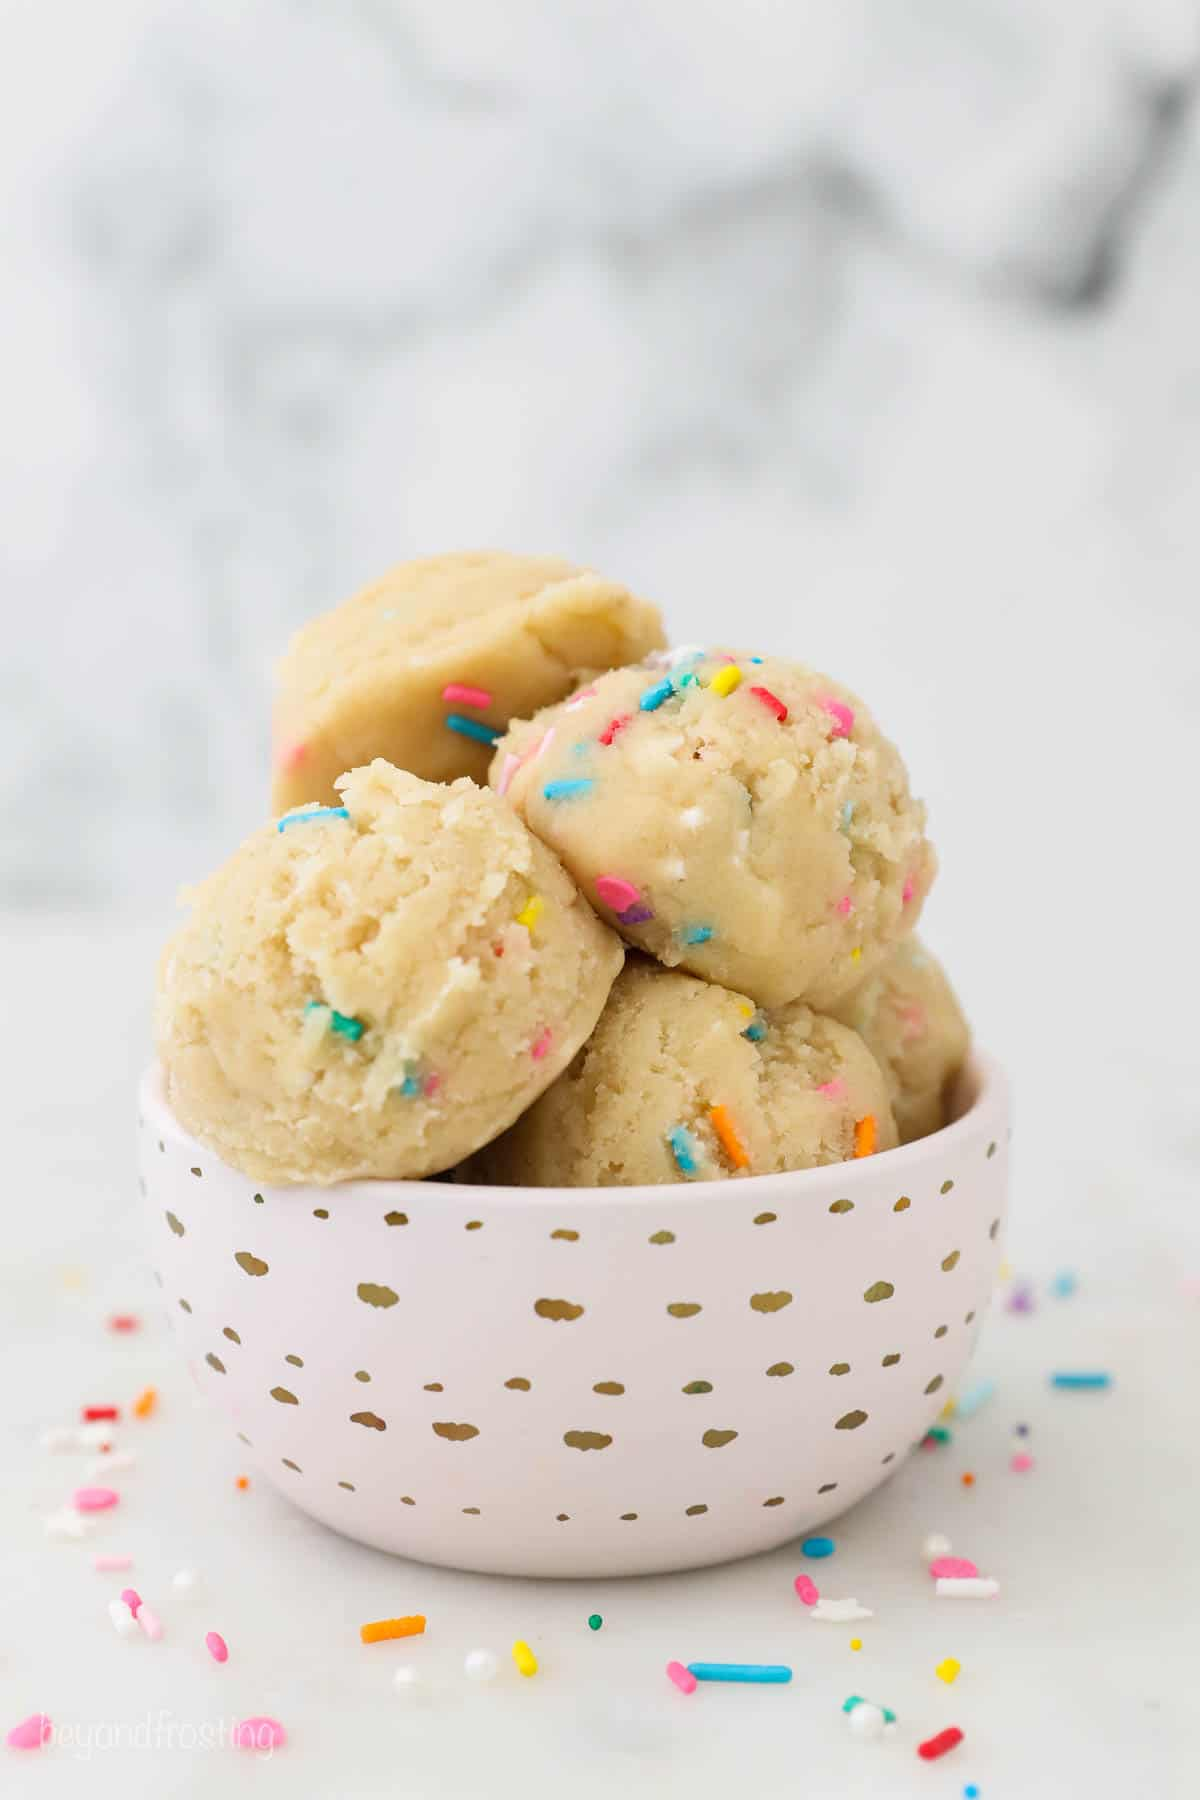 A pink bowl with gold dots filled with scooped of cookie dough with sprinkles